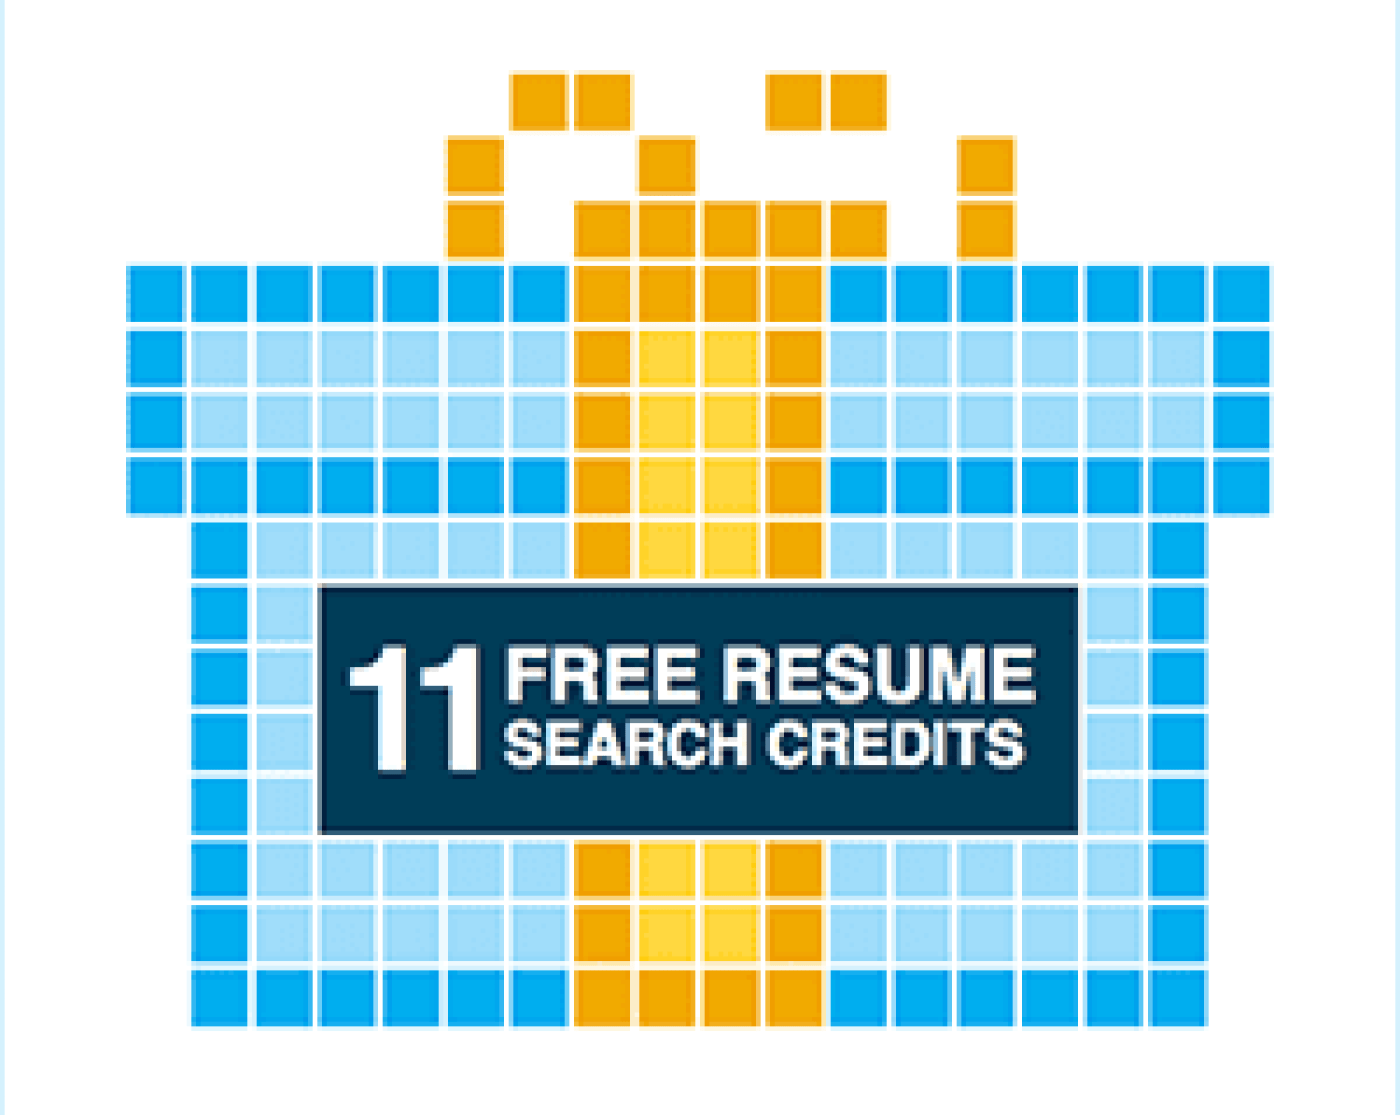 amcham vietnam 11 free resume search credits - Free Resume Search For Employers